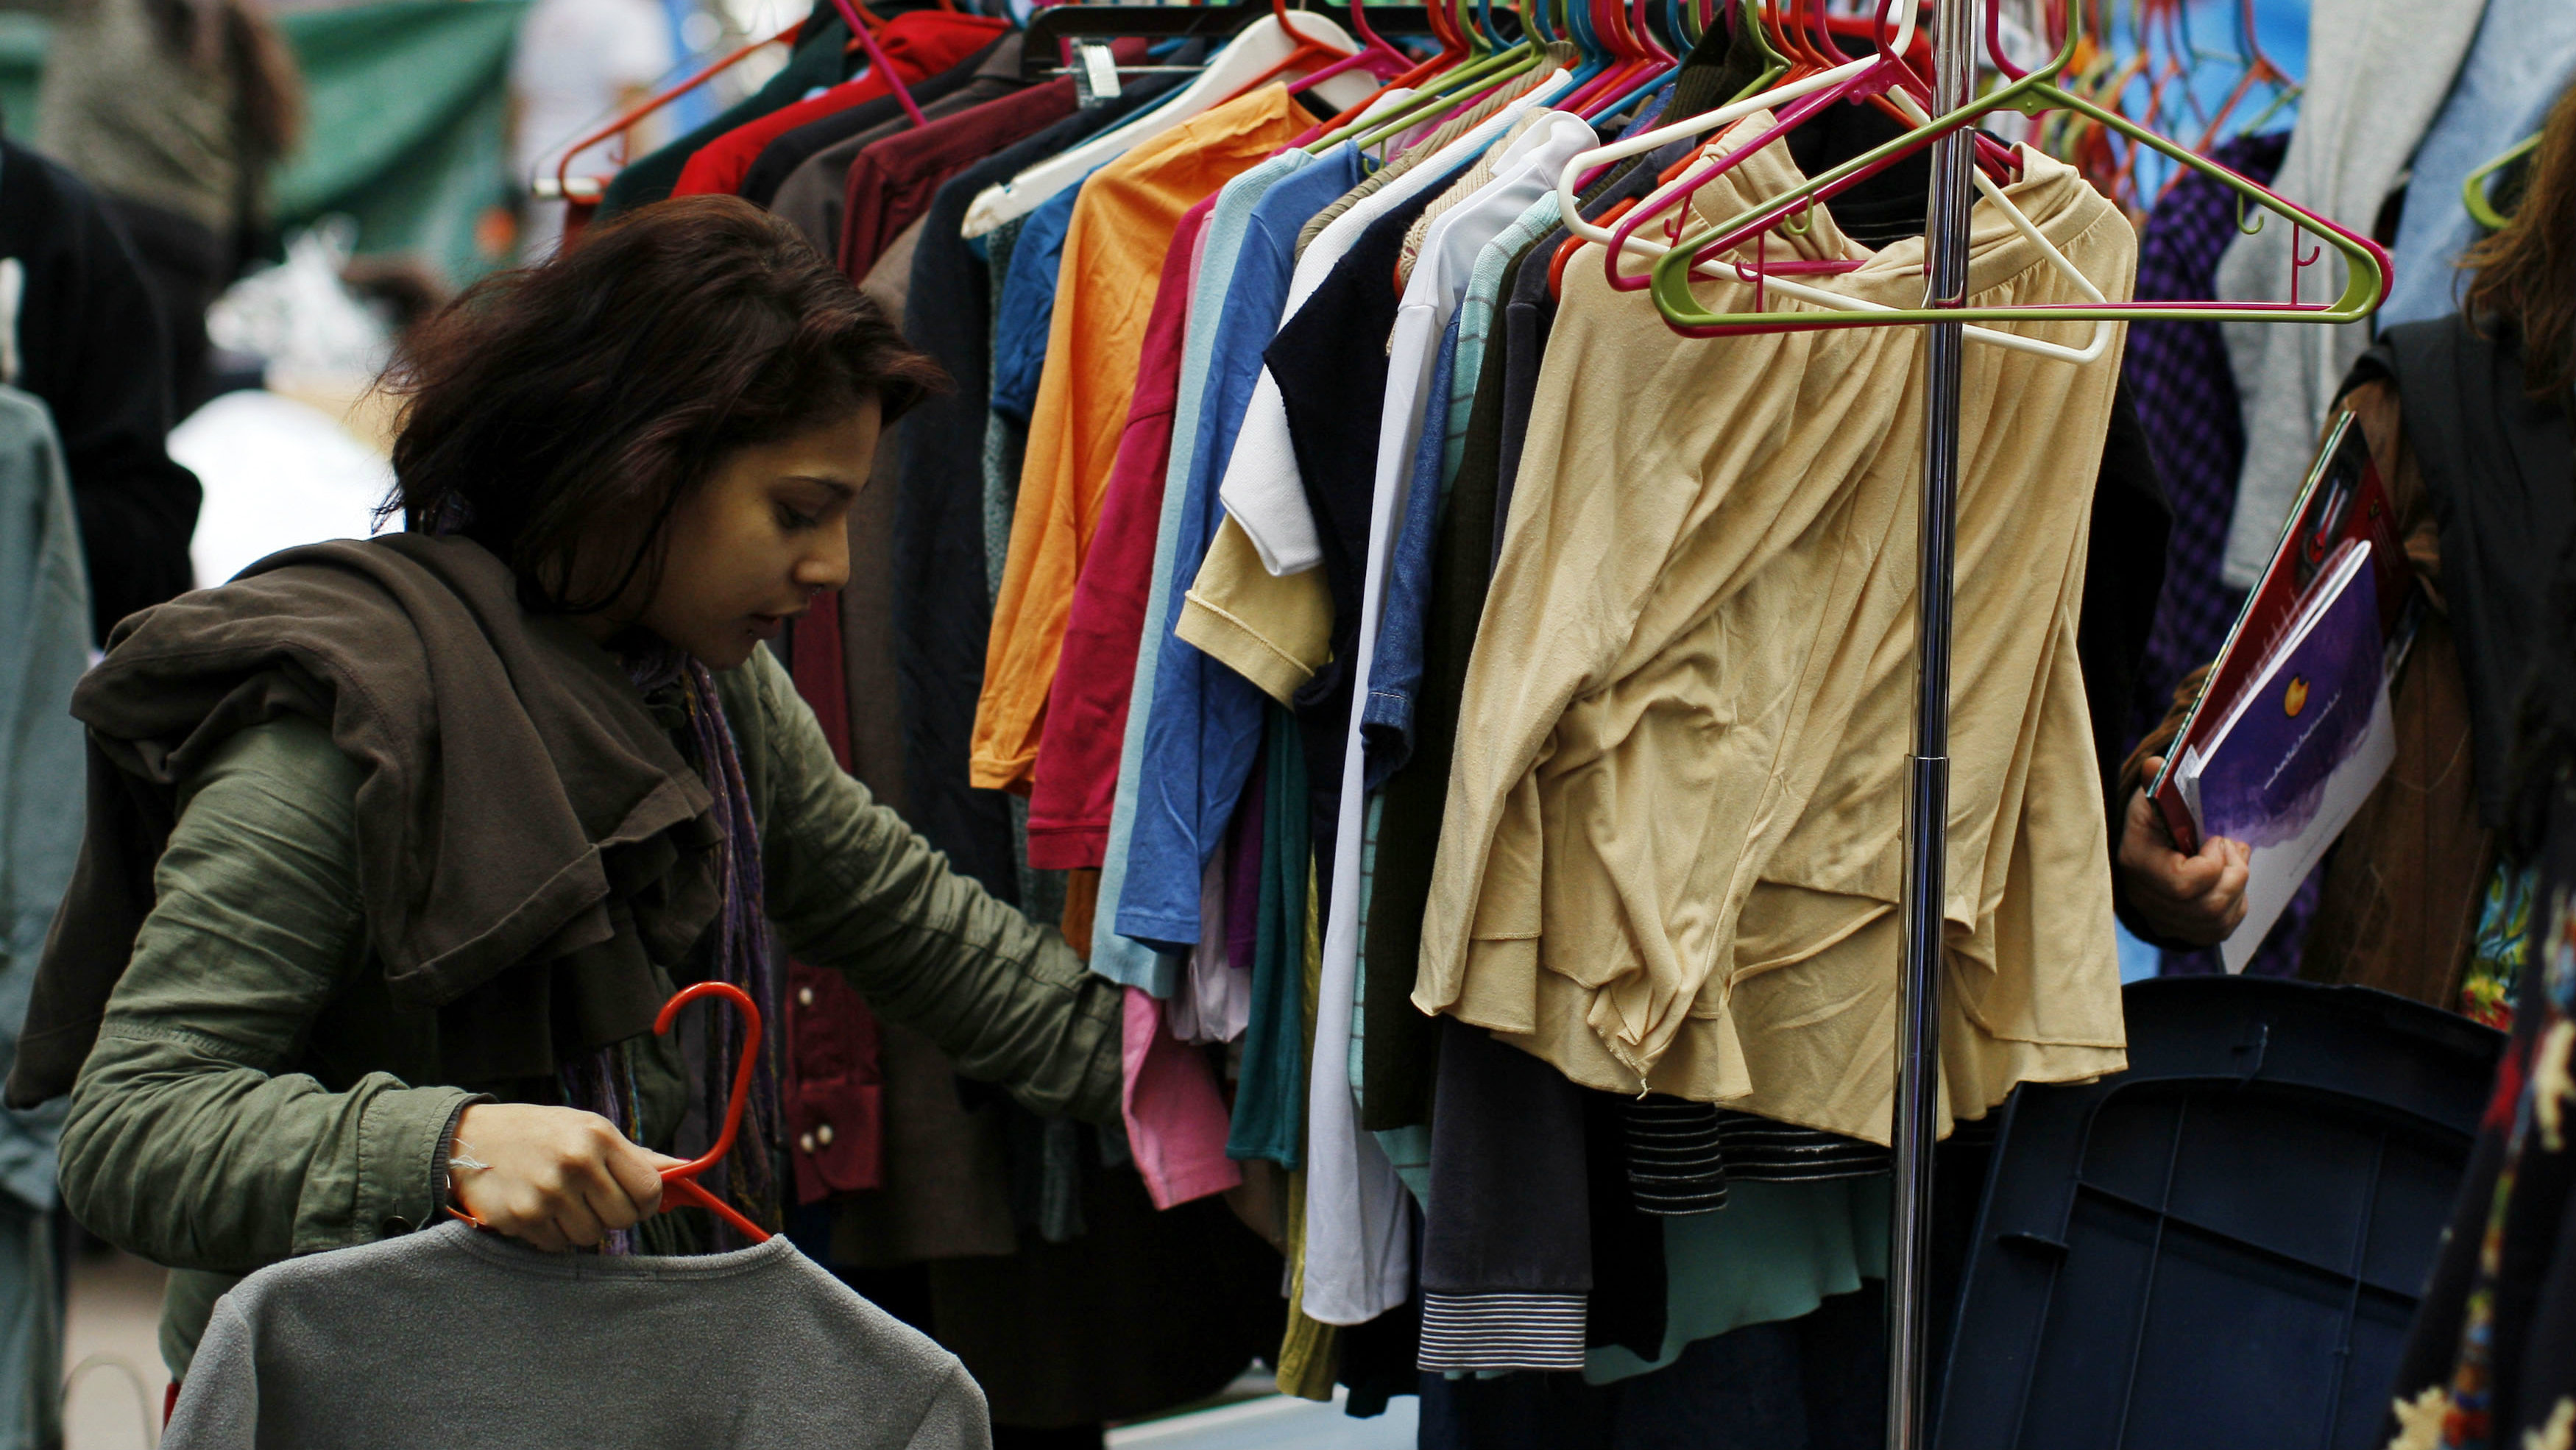 A member of the Occupy Wall Street movement picks up clean clothes from a rack of free donated clothes...